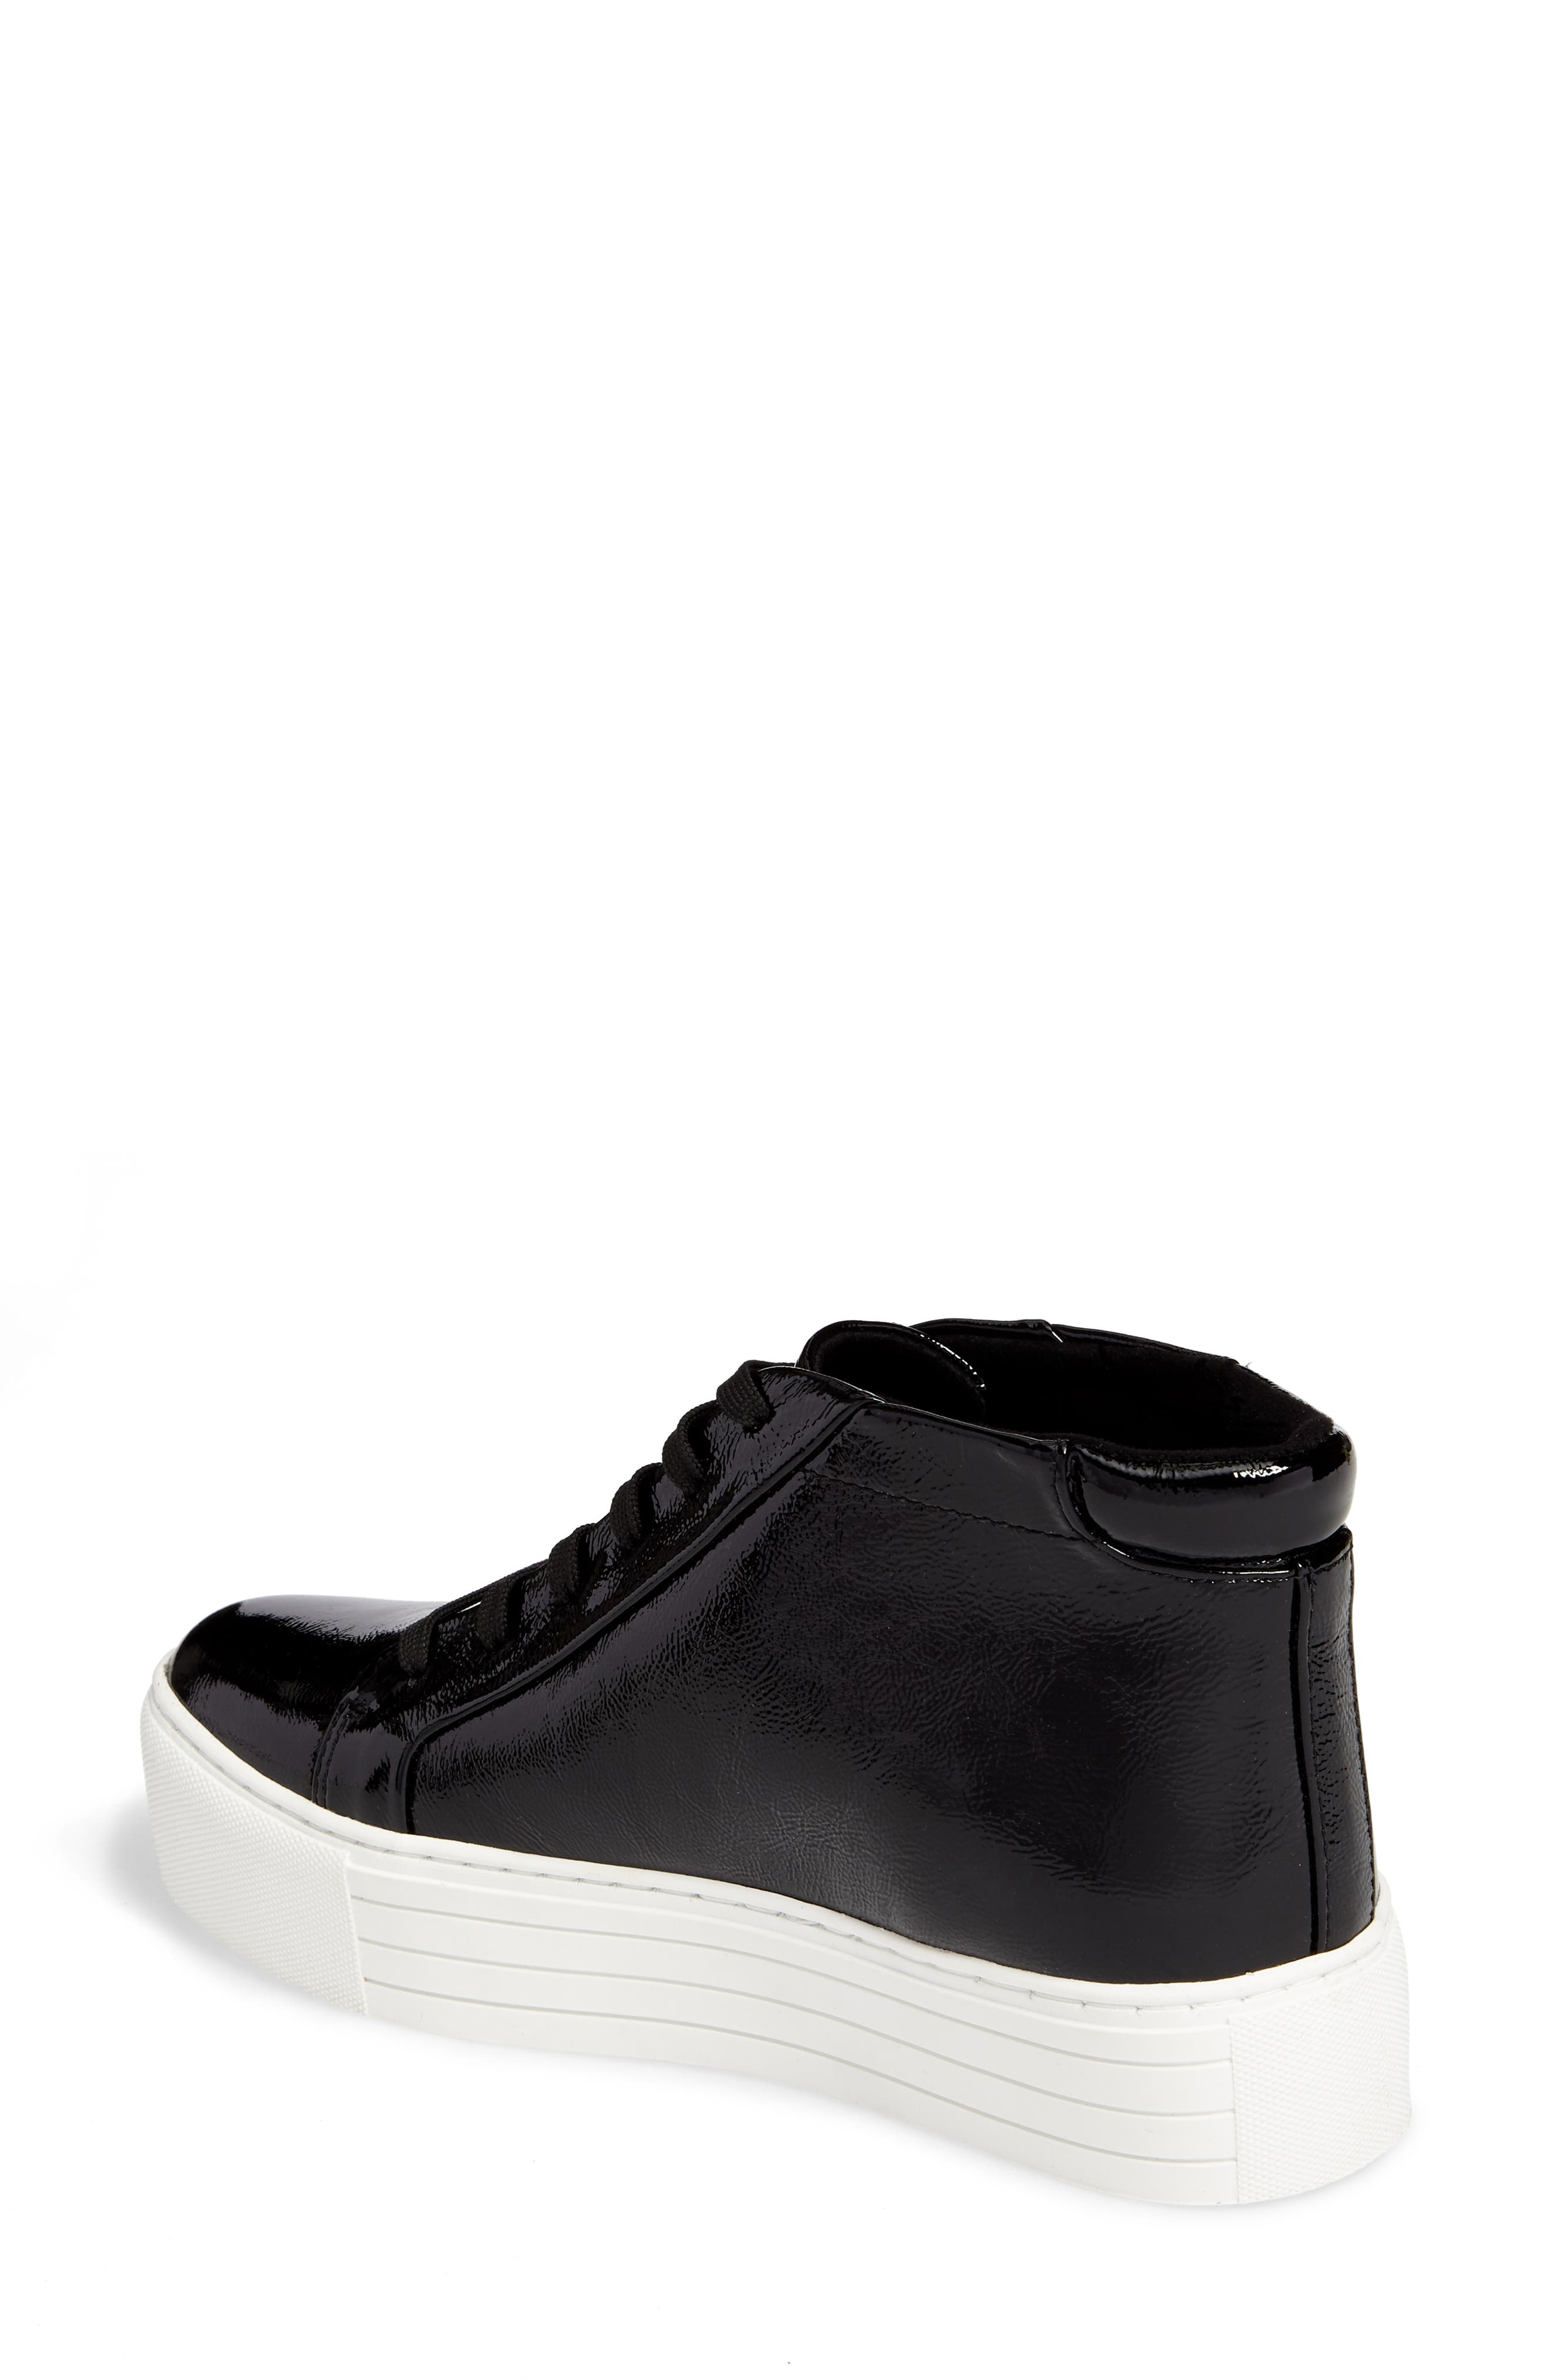 Janette High Top Platform Sneaker,                             Alternate thumbnail 2, color,                             Black Patent Leather